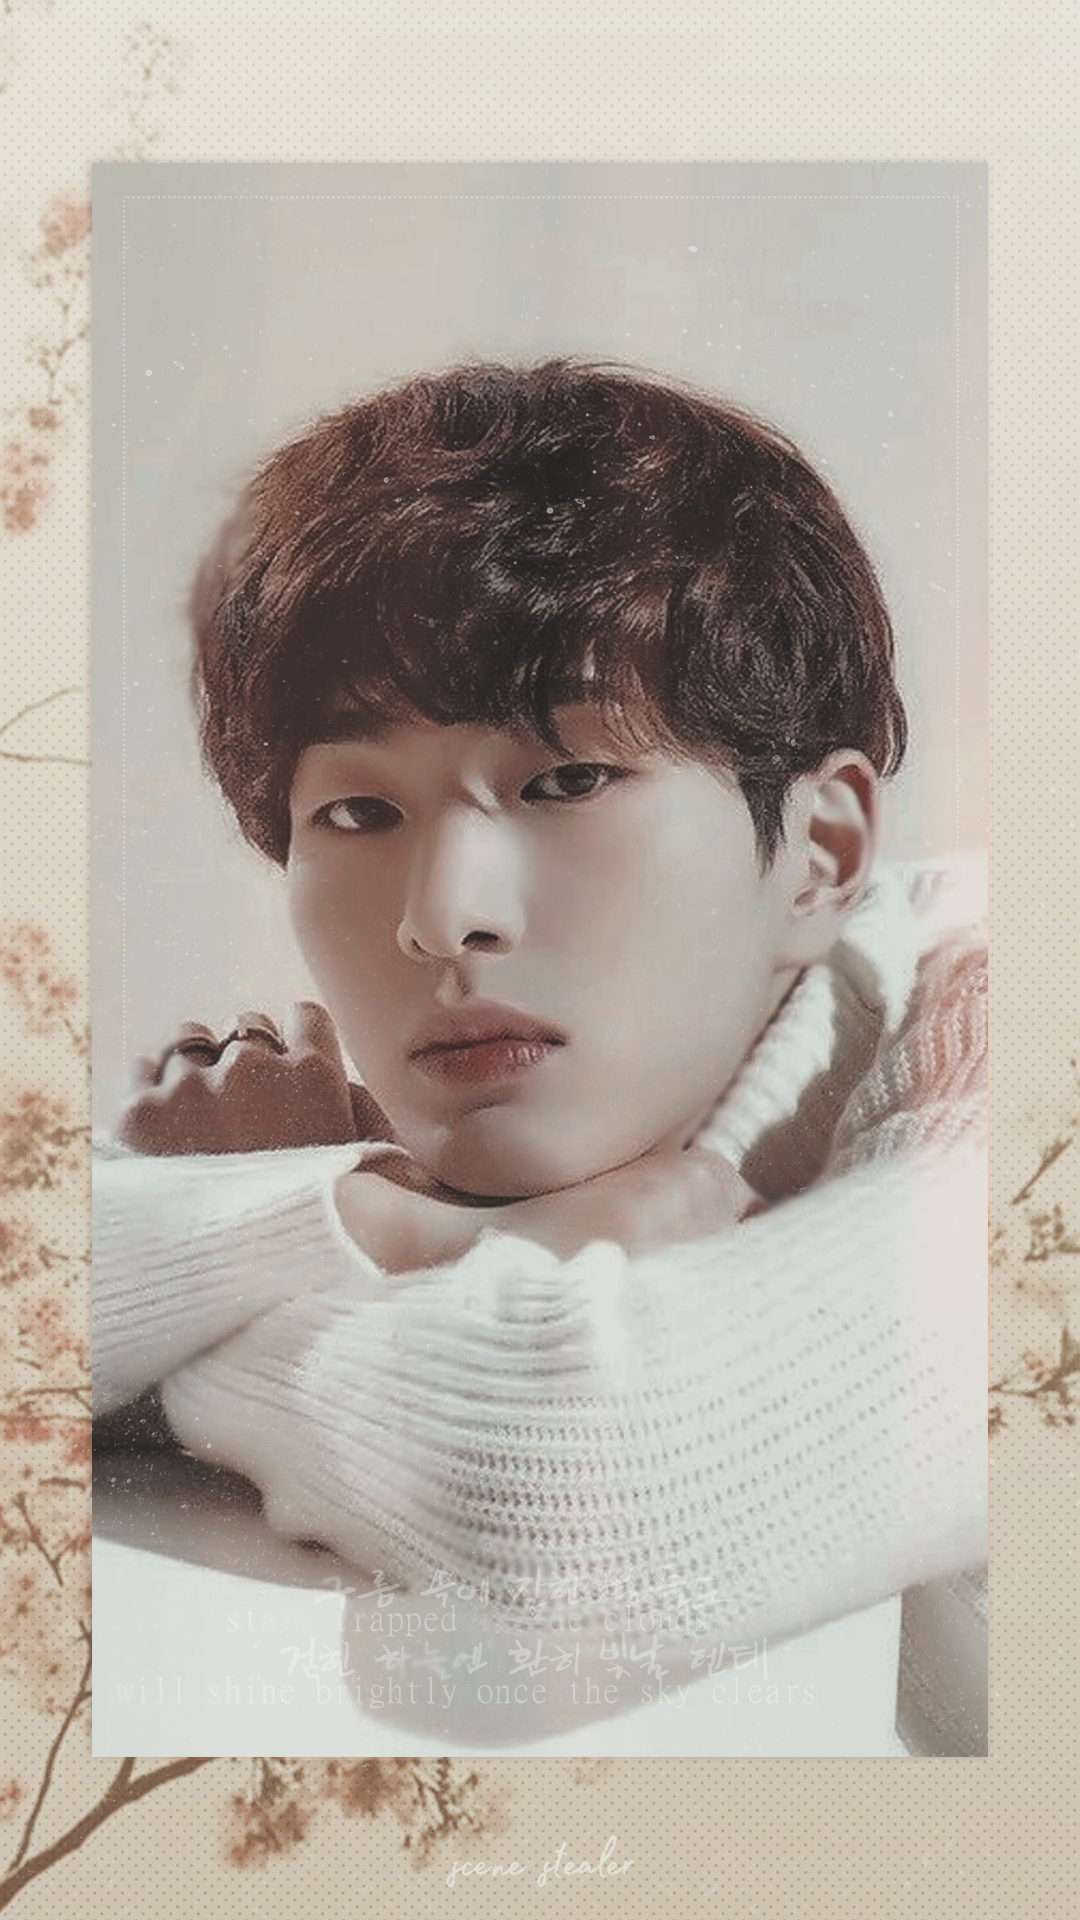 Shinee Onew Wallpaper Kpop Kpopwallpaper Shineewallpaper